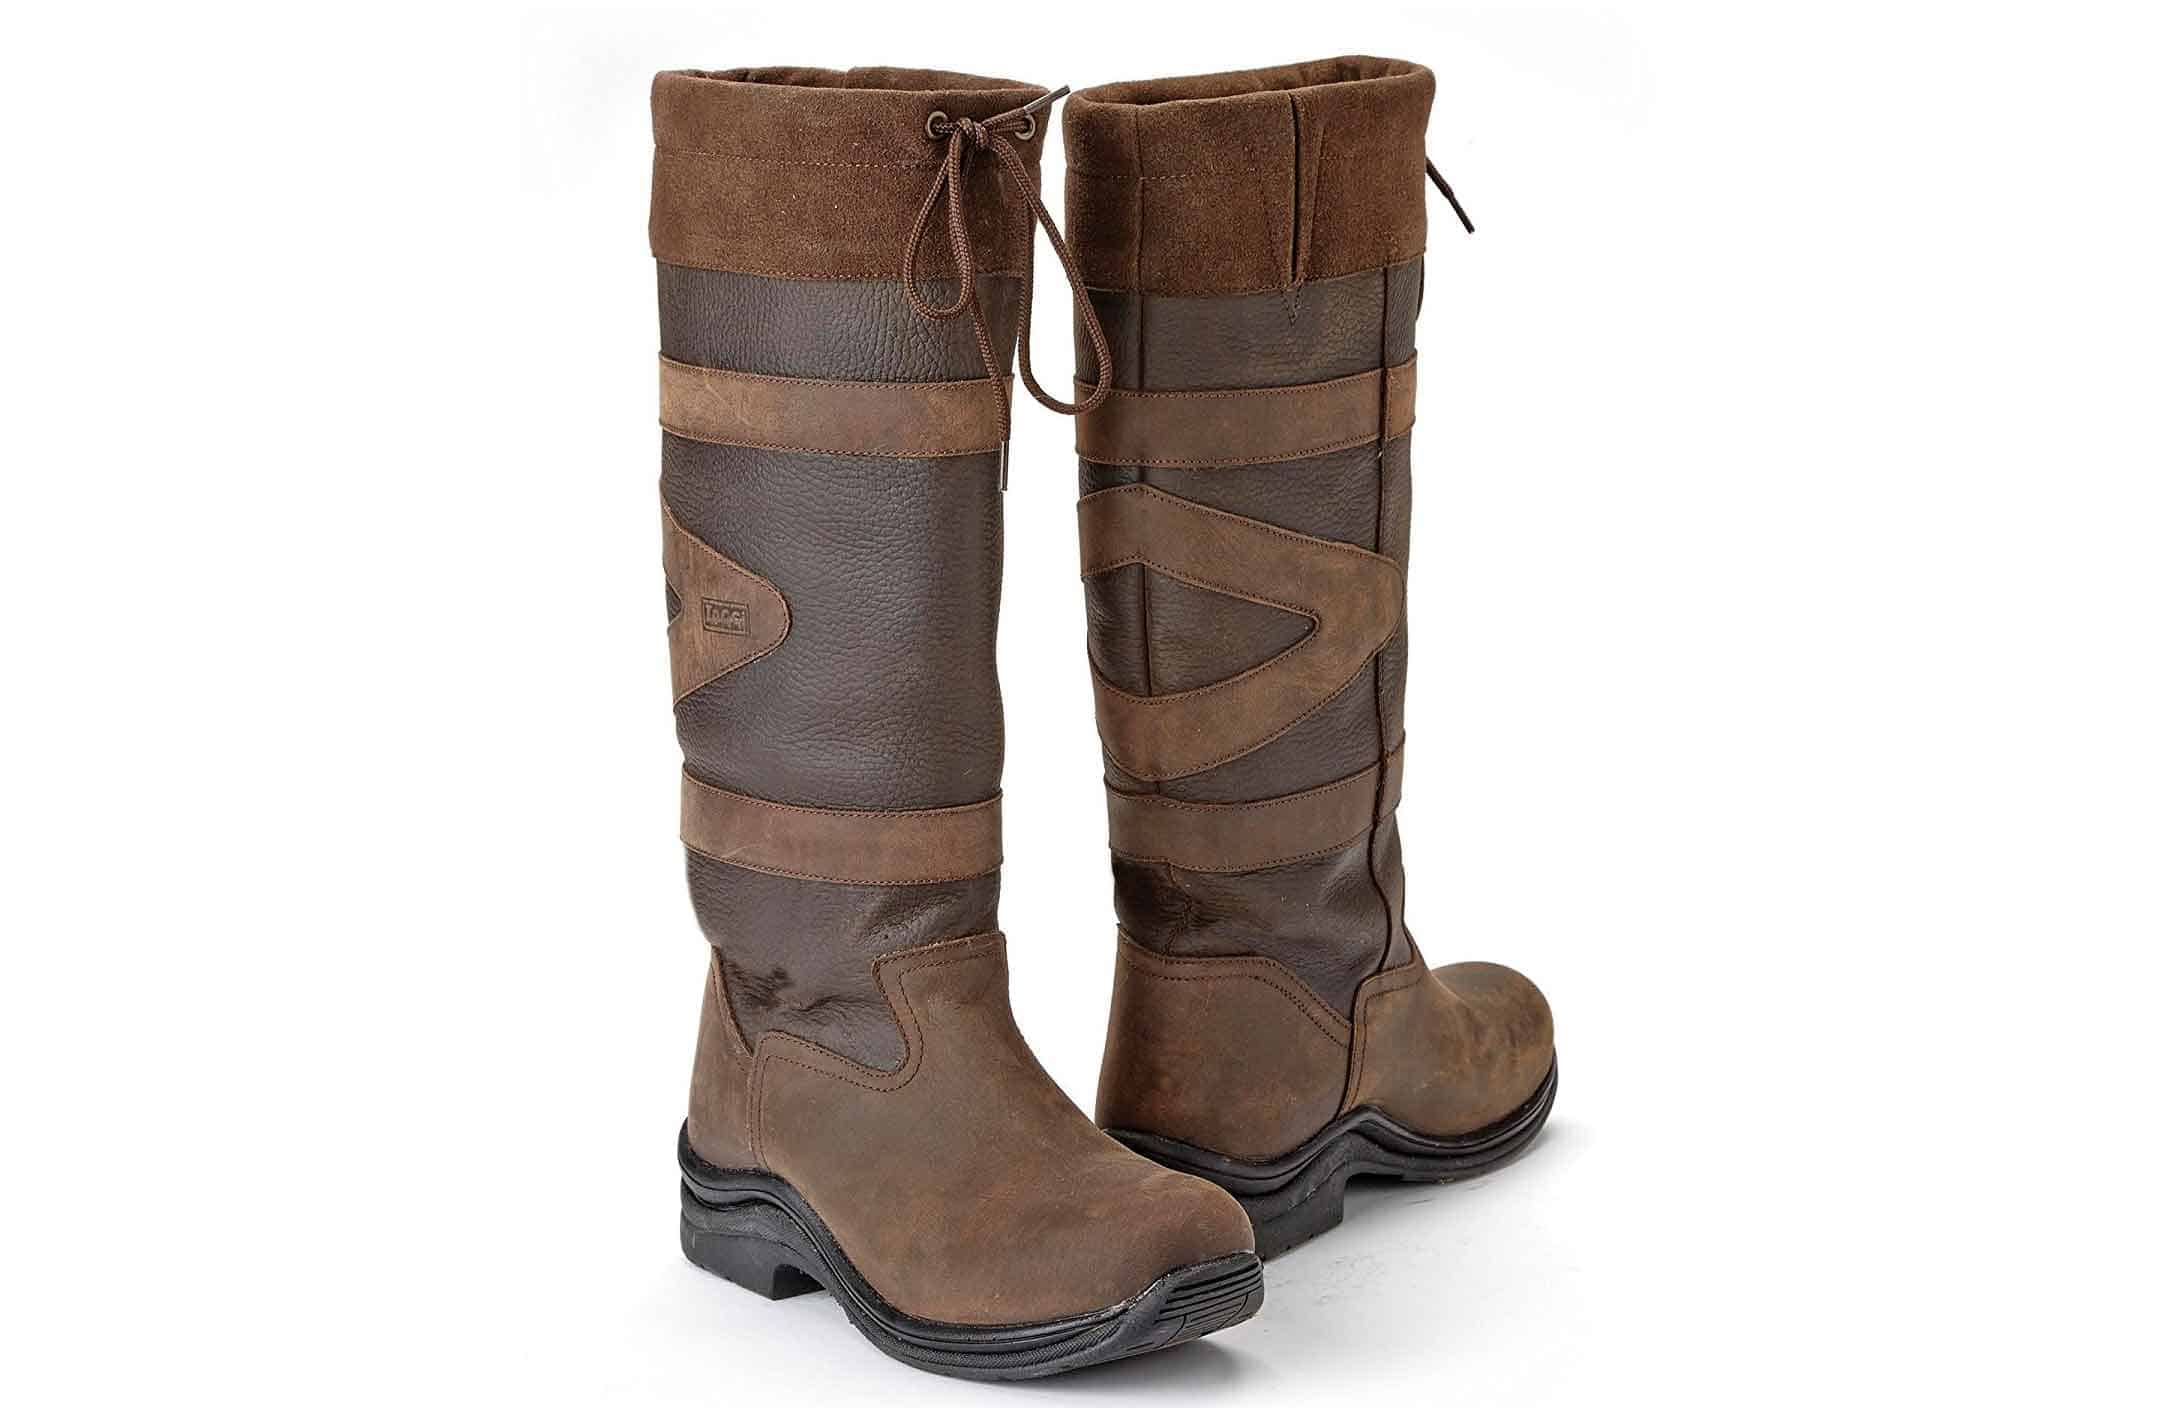 7d3a1367af9 Wide Calf Riding Boots and Wide Fit Riding Boots - Many Styles ...